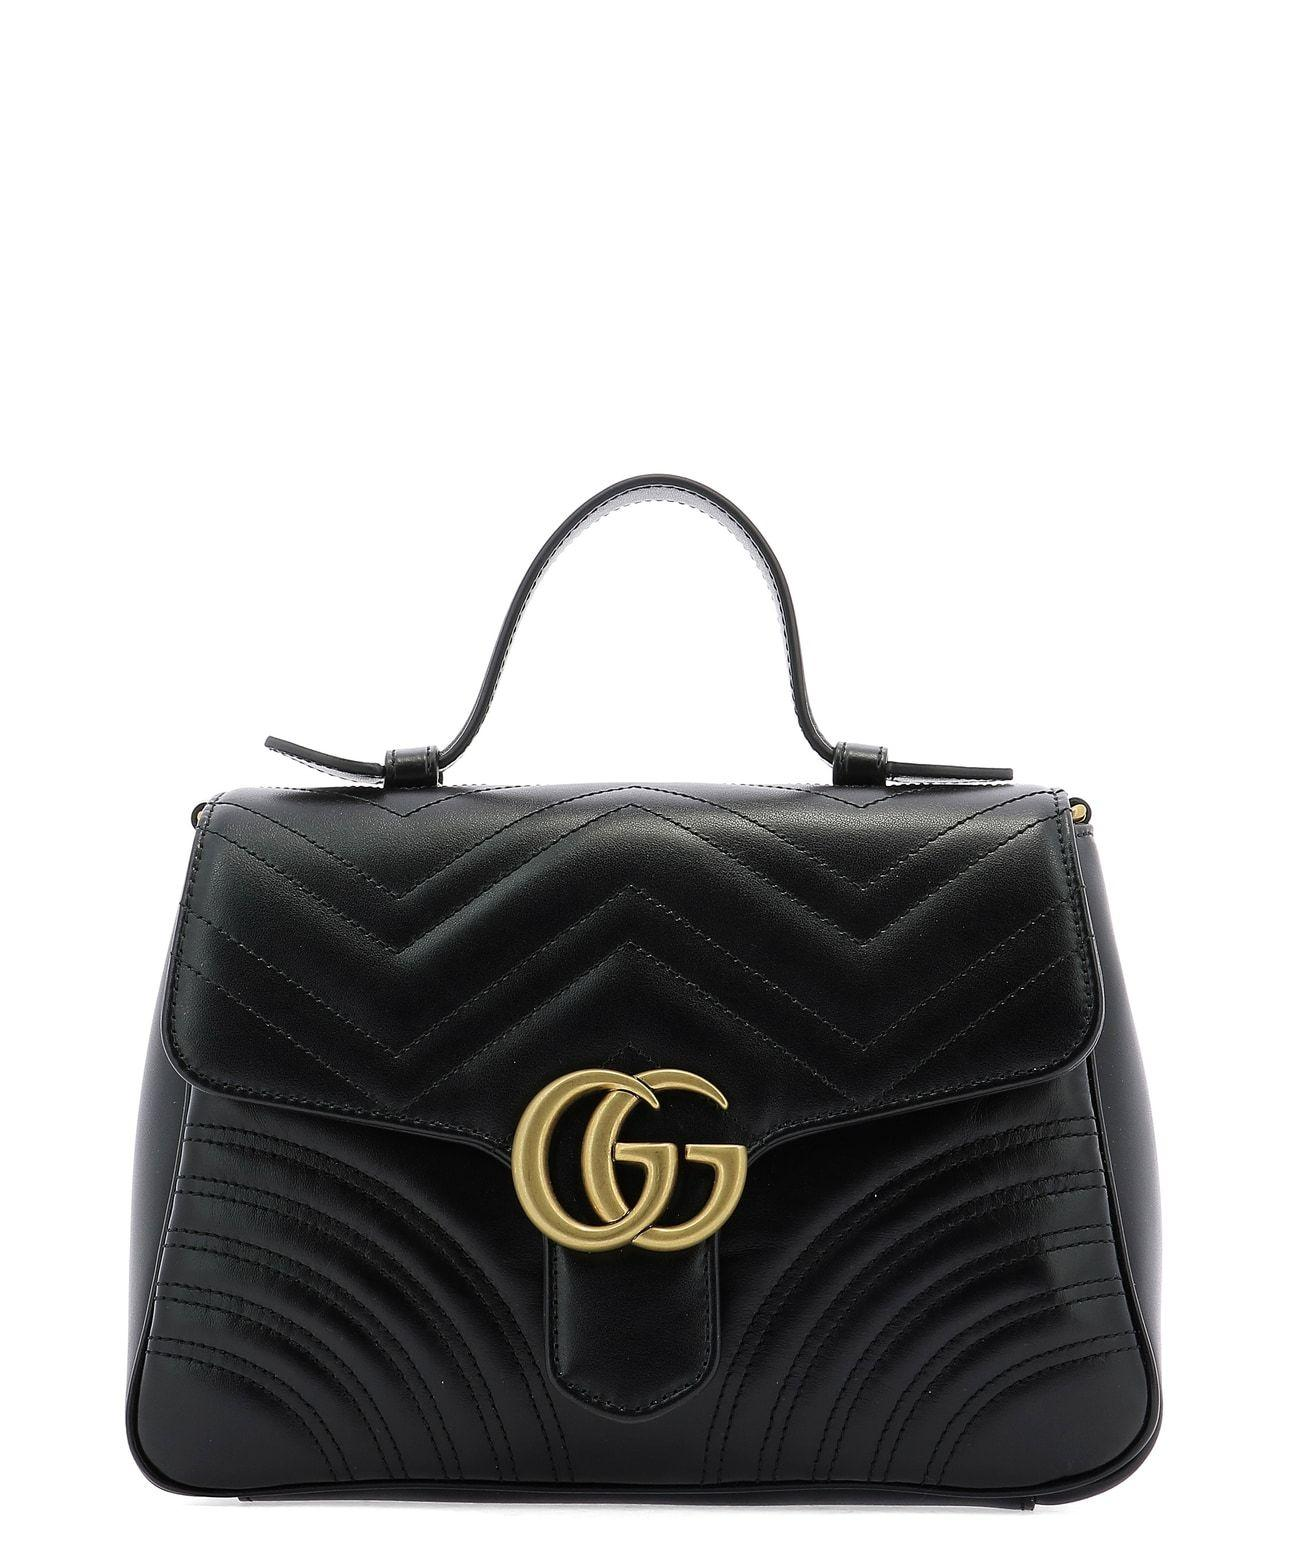 371b36b88 Gucci GG Marmont Small Top Handle Bag Black in Black - Lyst